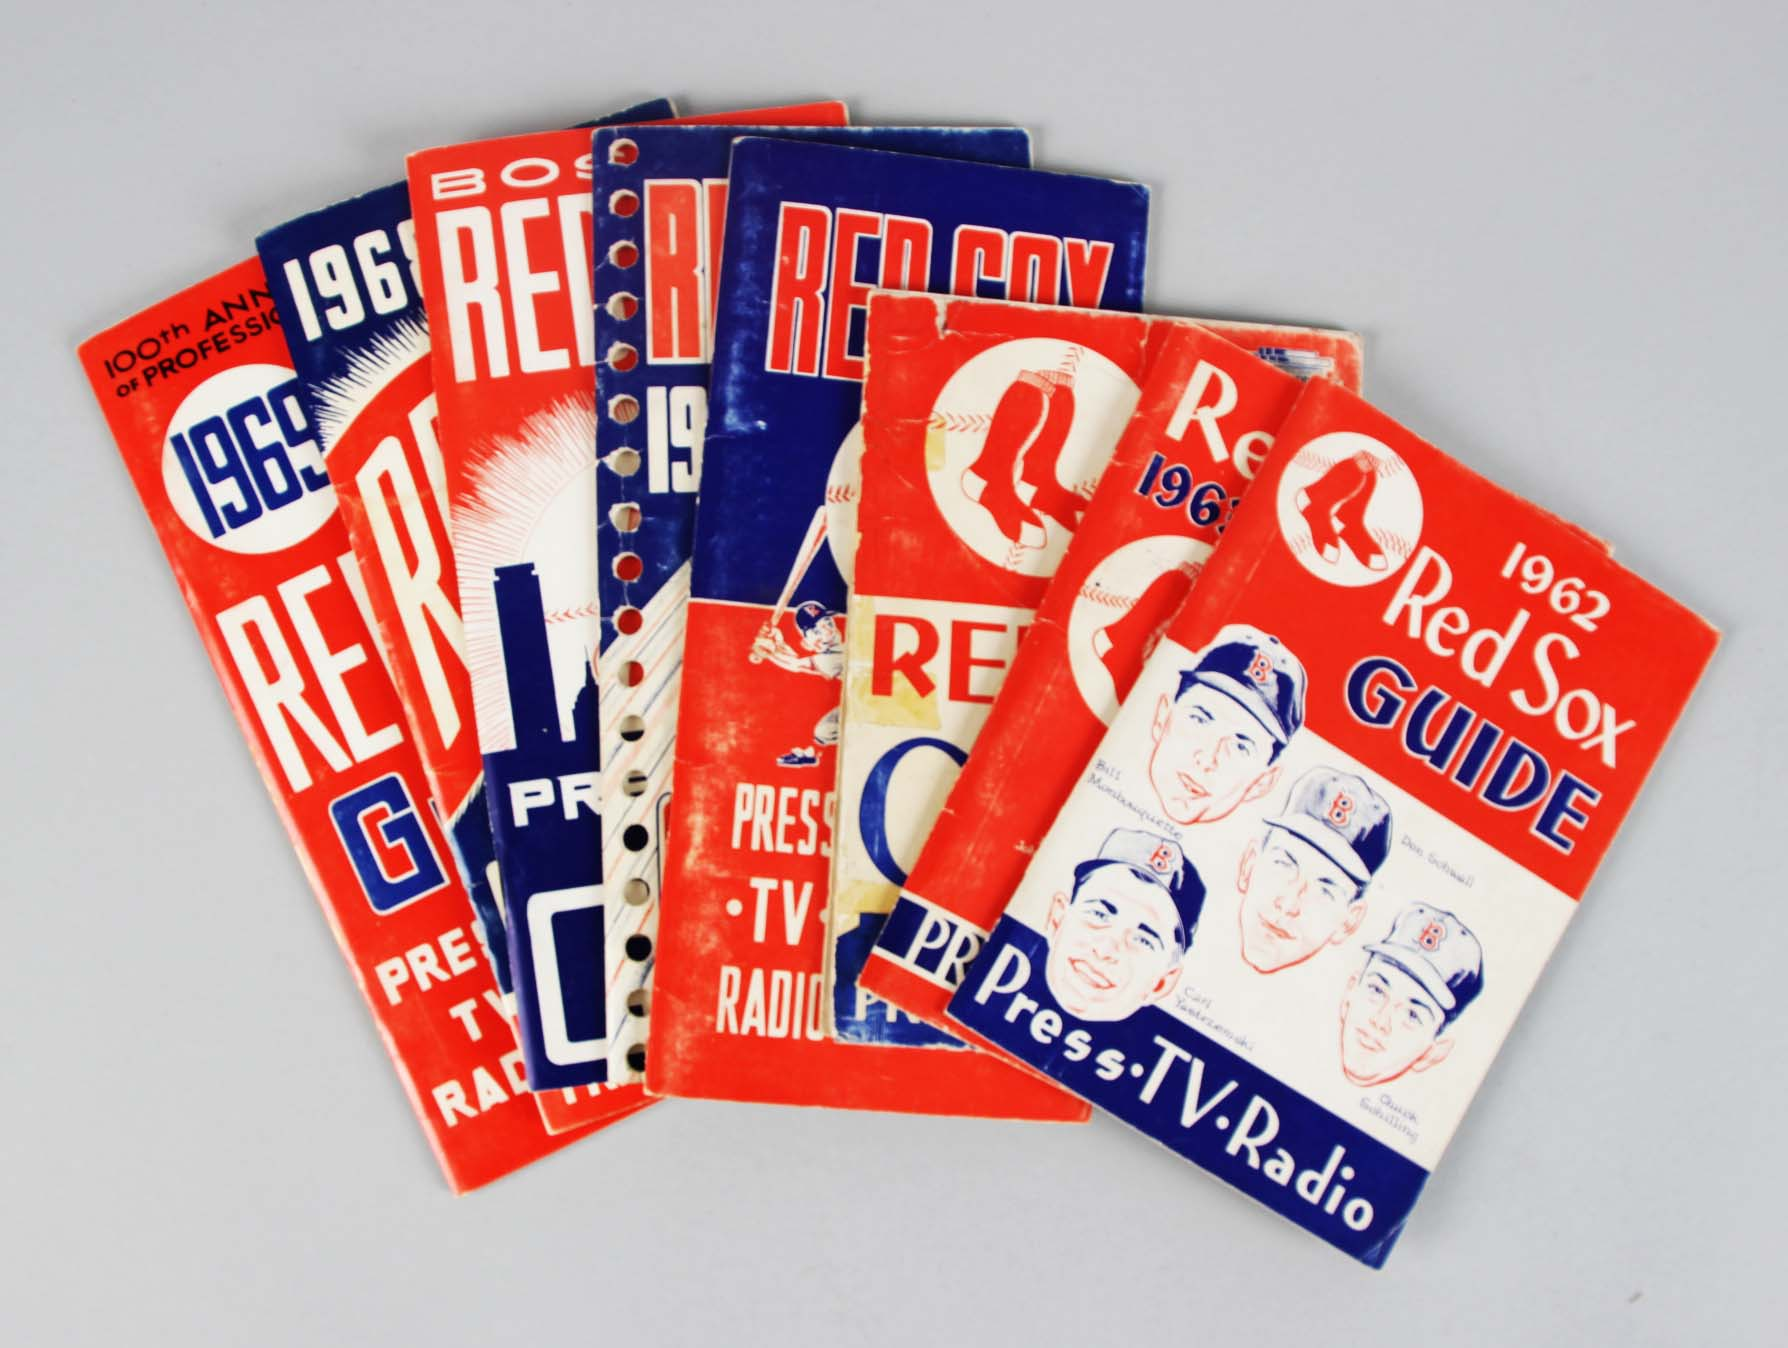 1962-1969 Boston Red Sox Press, TV, Radio Guide Lot (8)